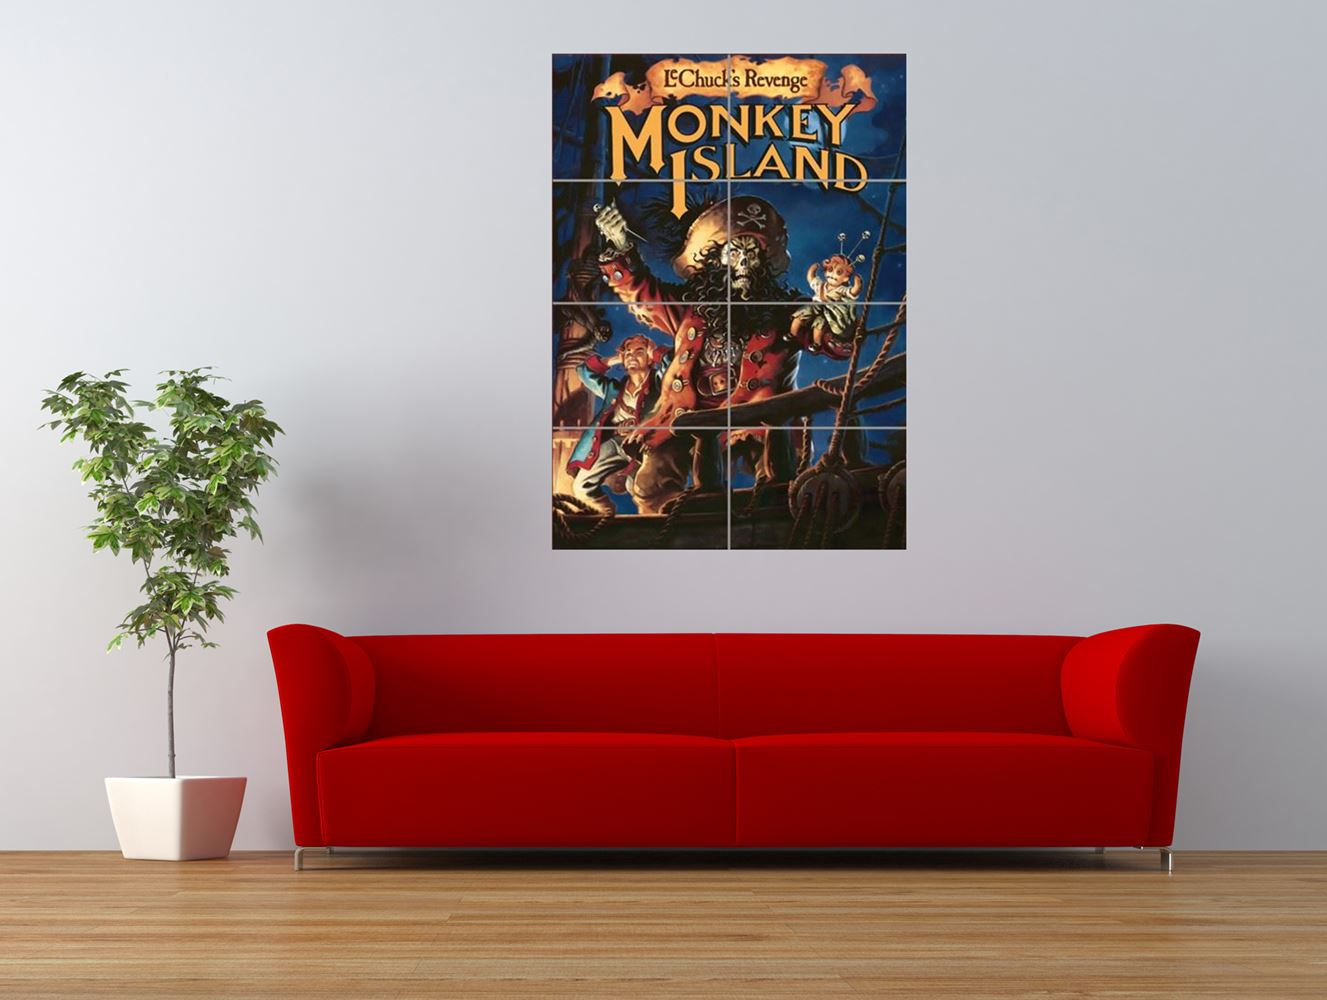 monkey island retro pc computer game giant art print panel poster nor0044 ebay. Black Bedroom Furniture Sets. Home Design Ideas